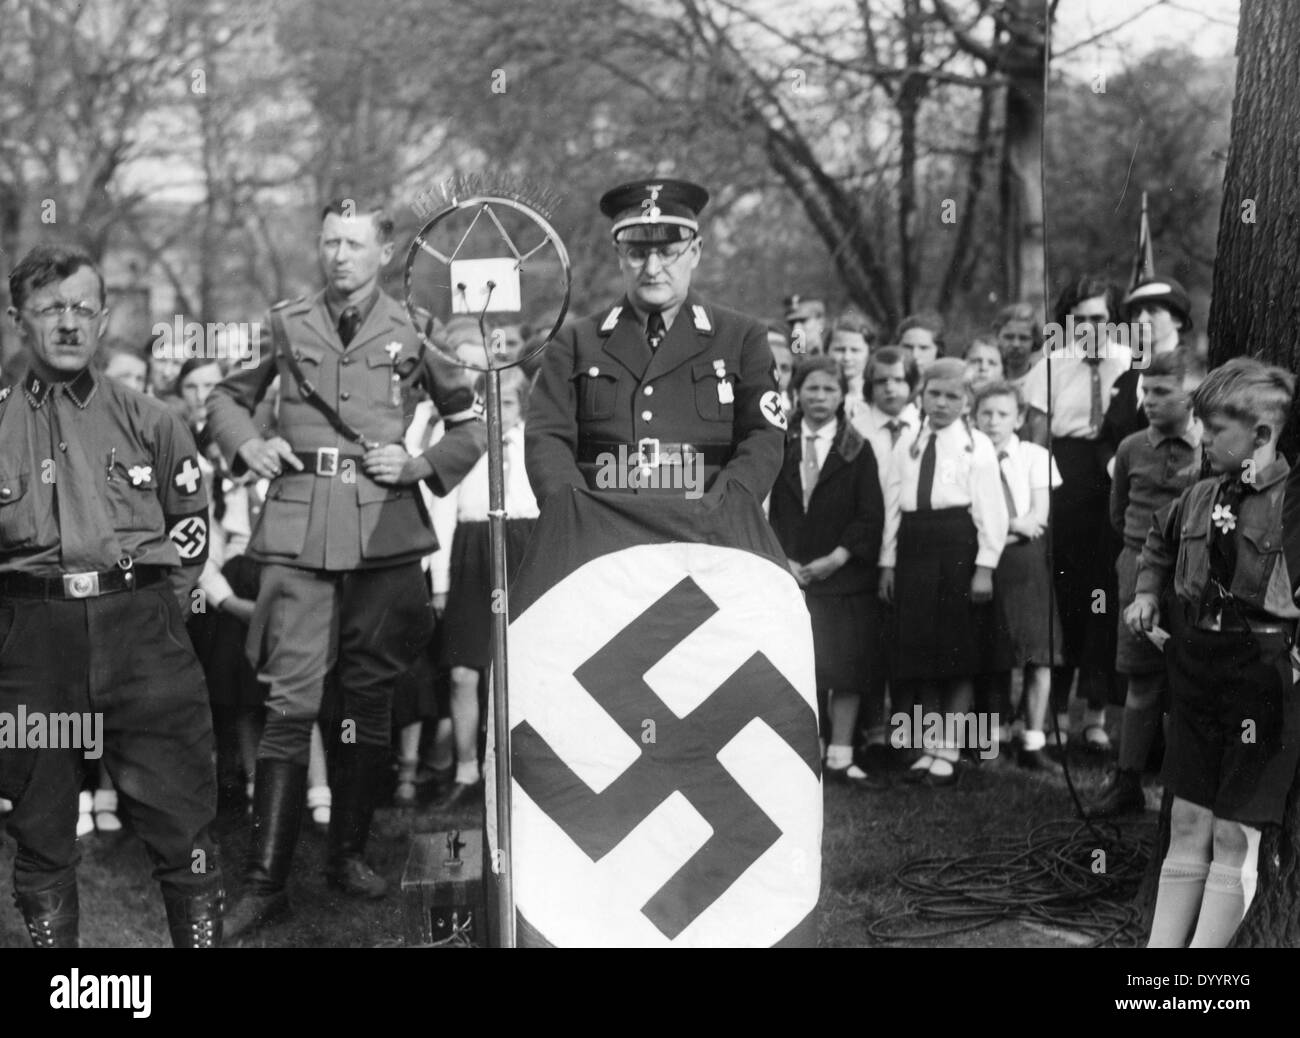 Promotional event of the NSDAP, 1933 - Stock Image